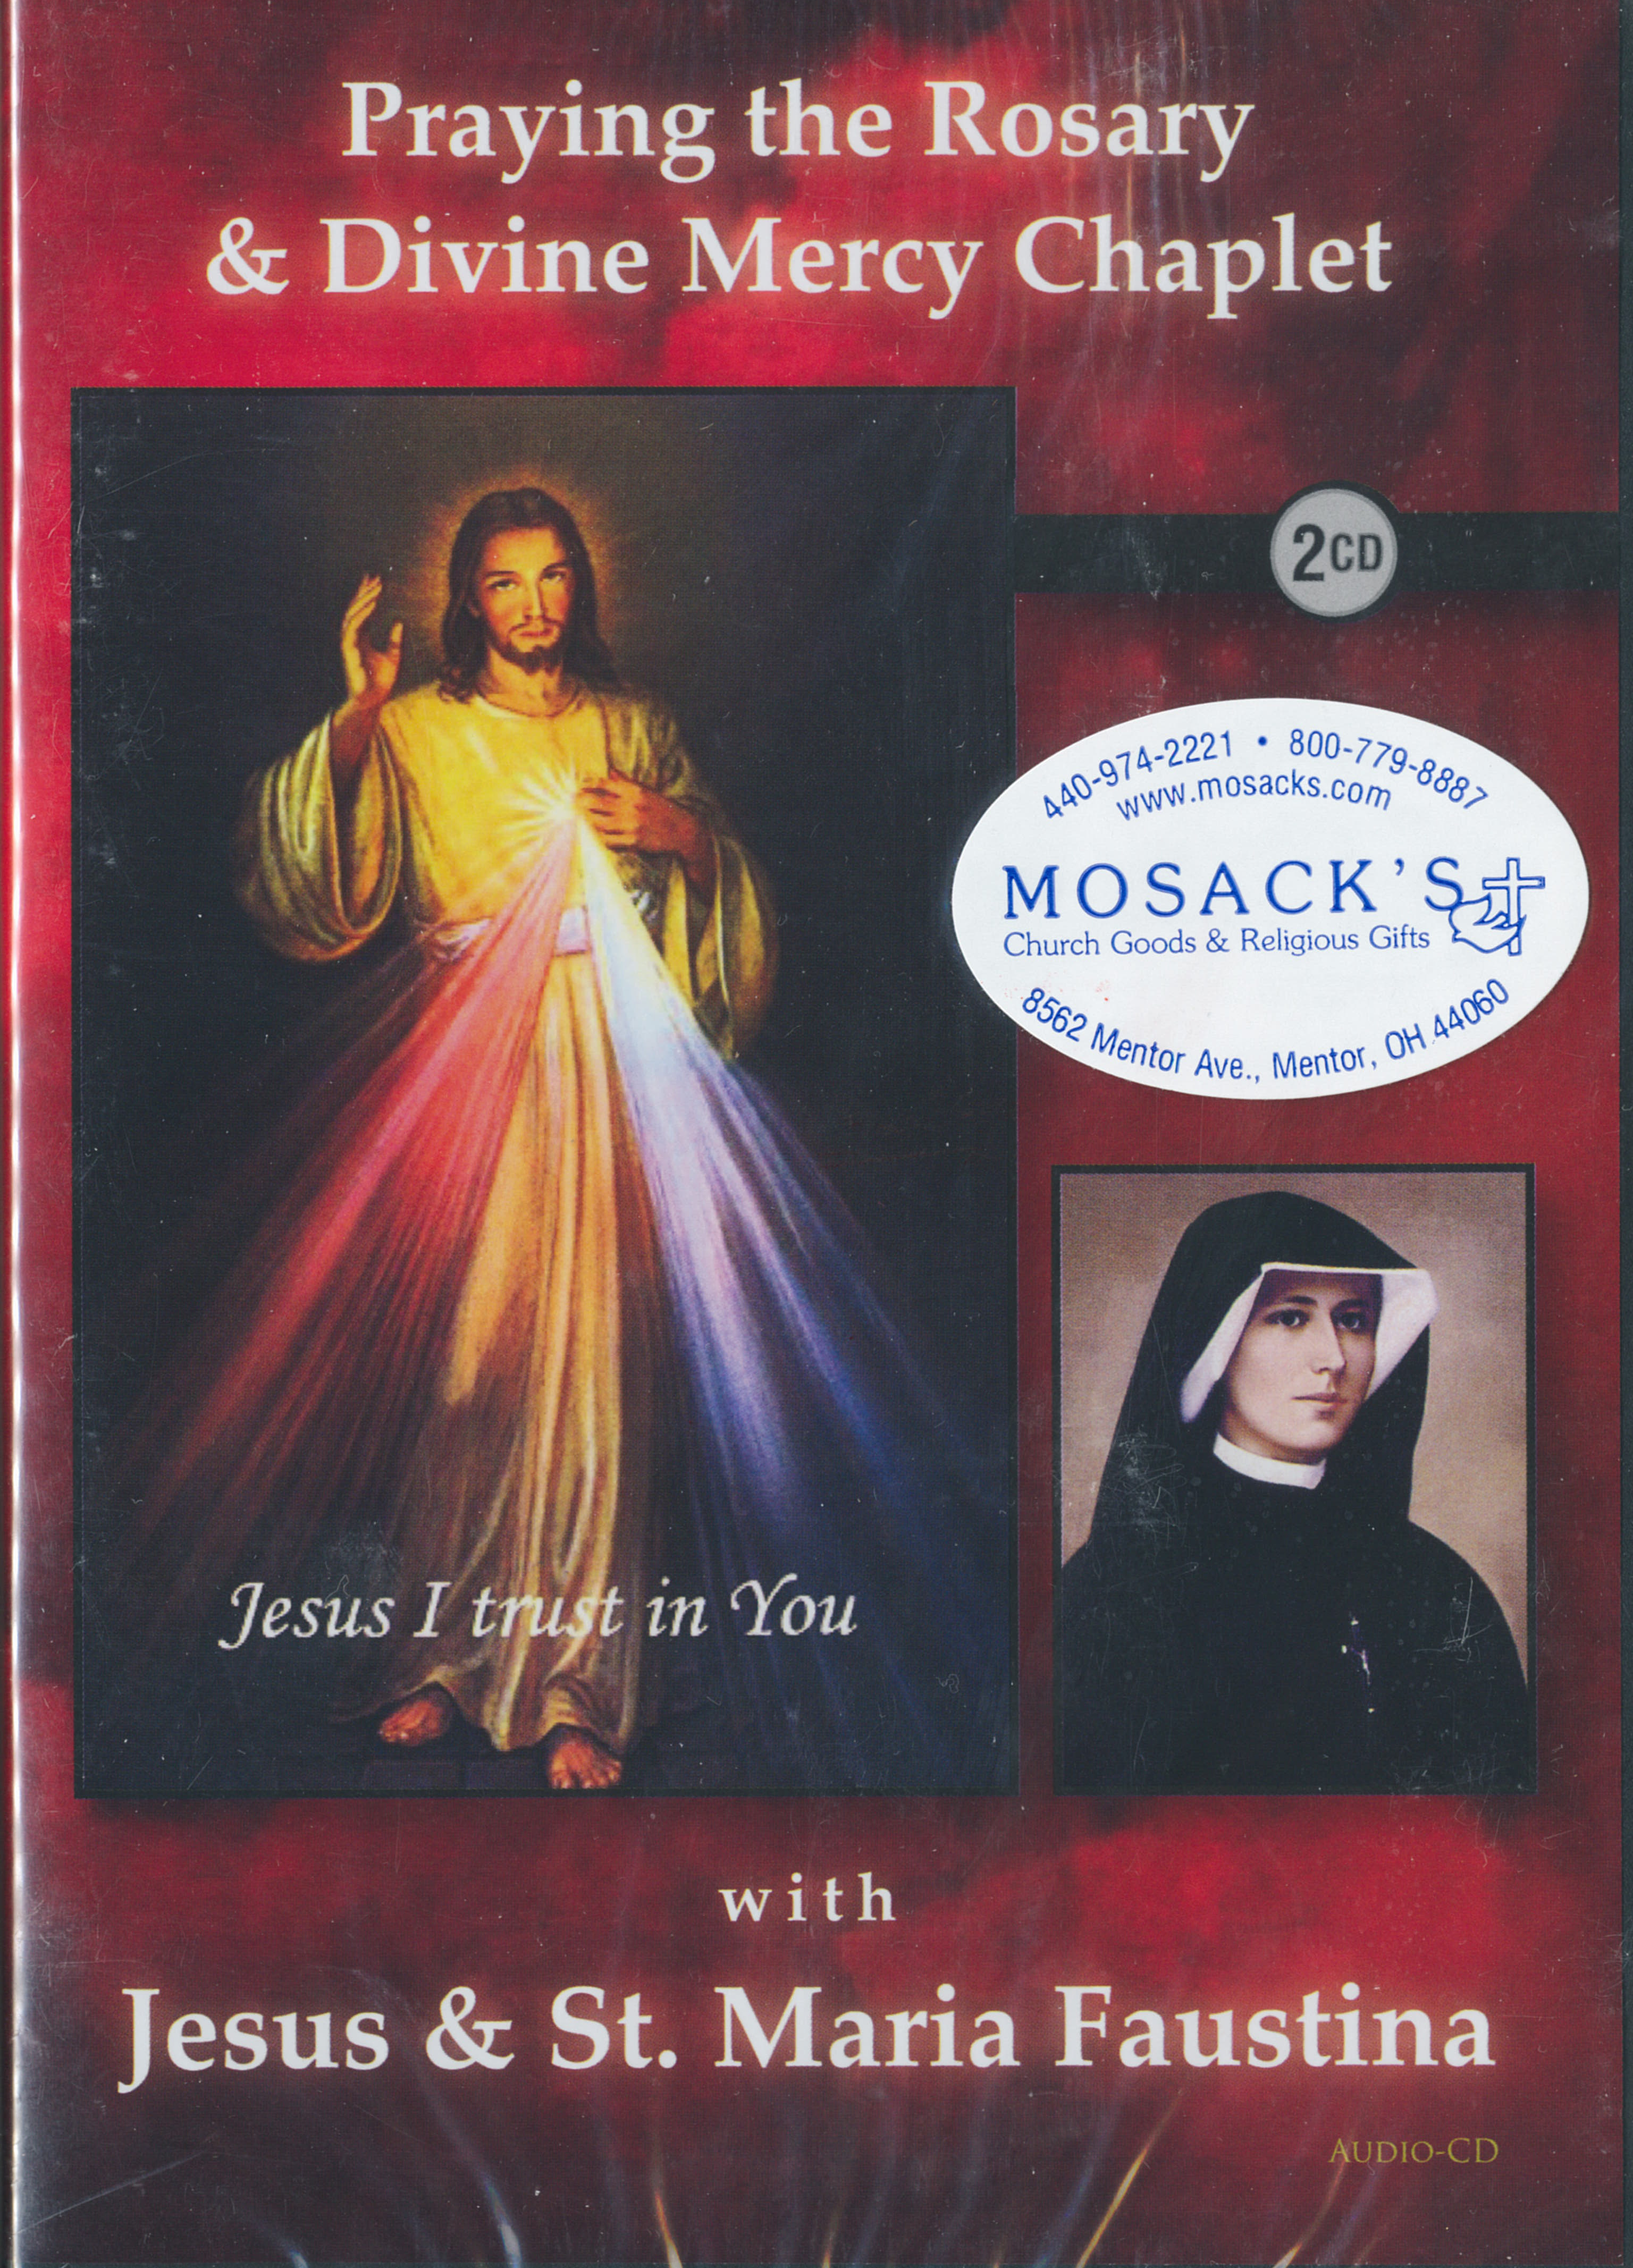 CD-Praying The Rosary & Divine Mercy Chaplet With Jesus & St. Maria Faustina 2 Audio CD Set 880414112229